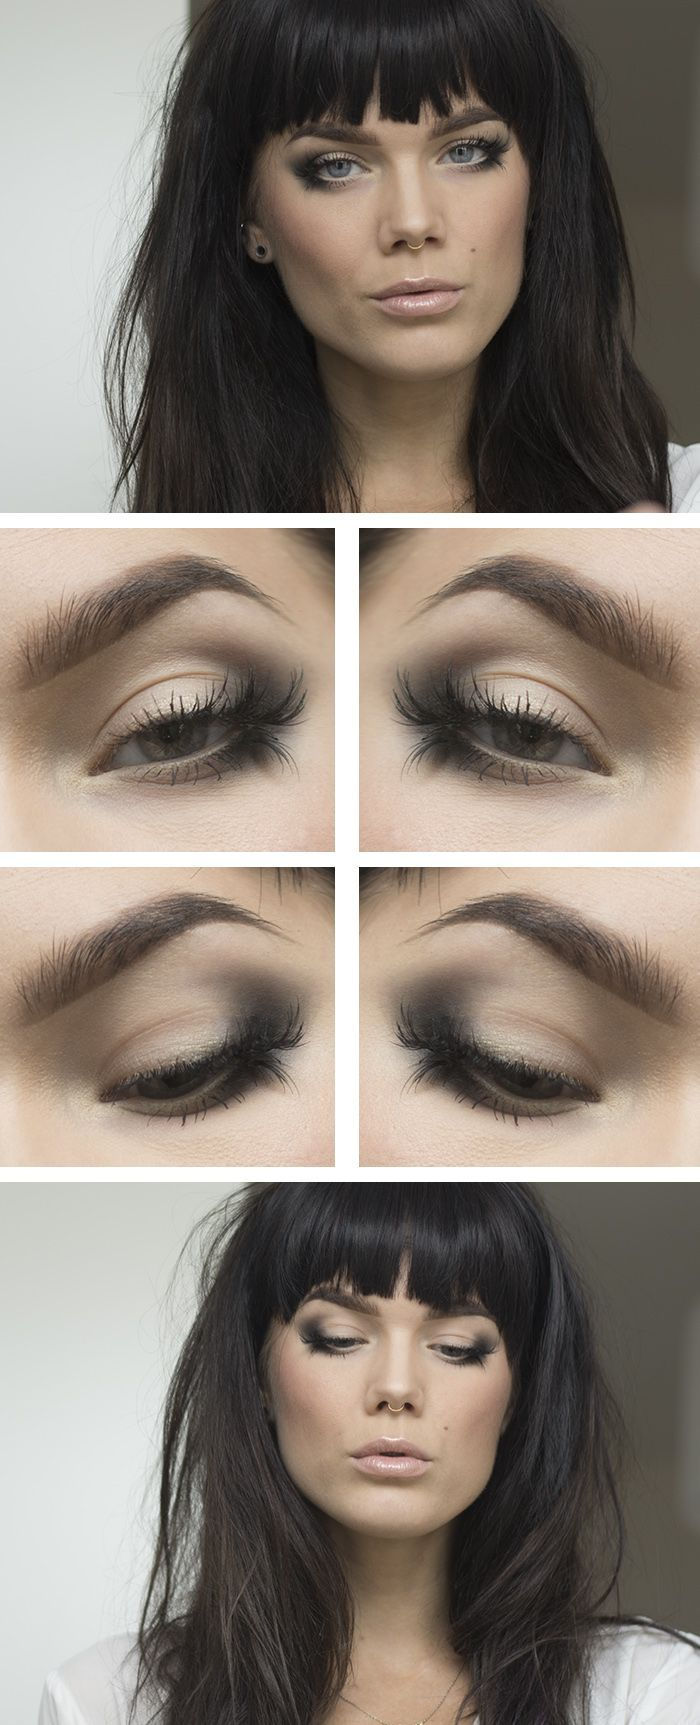 Smokey eye With just a blended pencil, some gold liner and lashes cut to pieces. Nice!